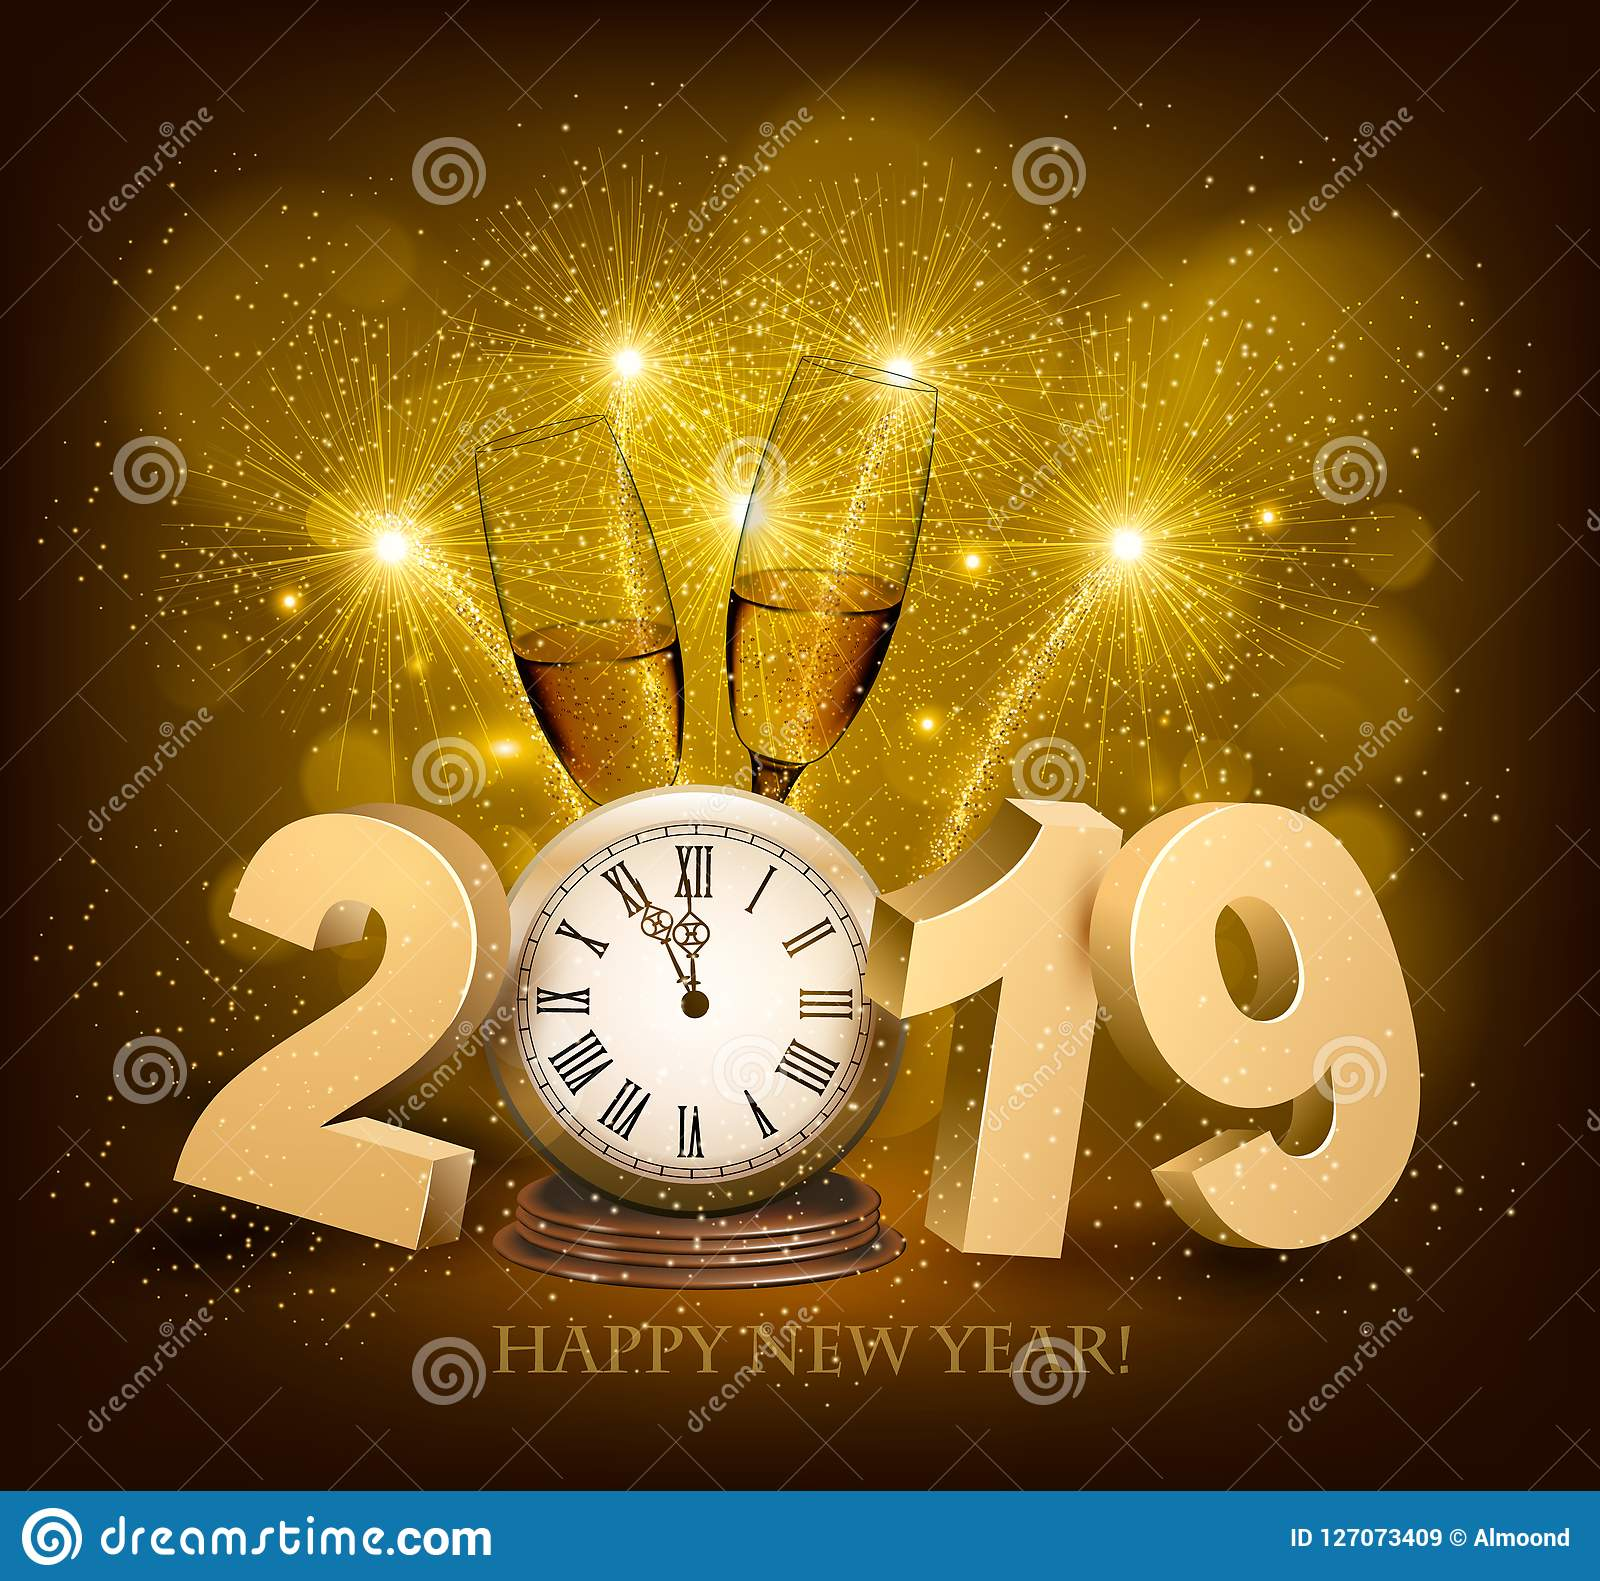 happy new year background with 2019 a clock and fireworks